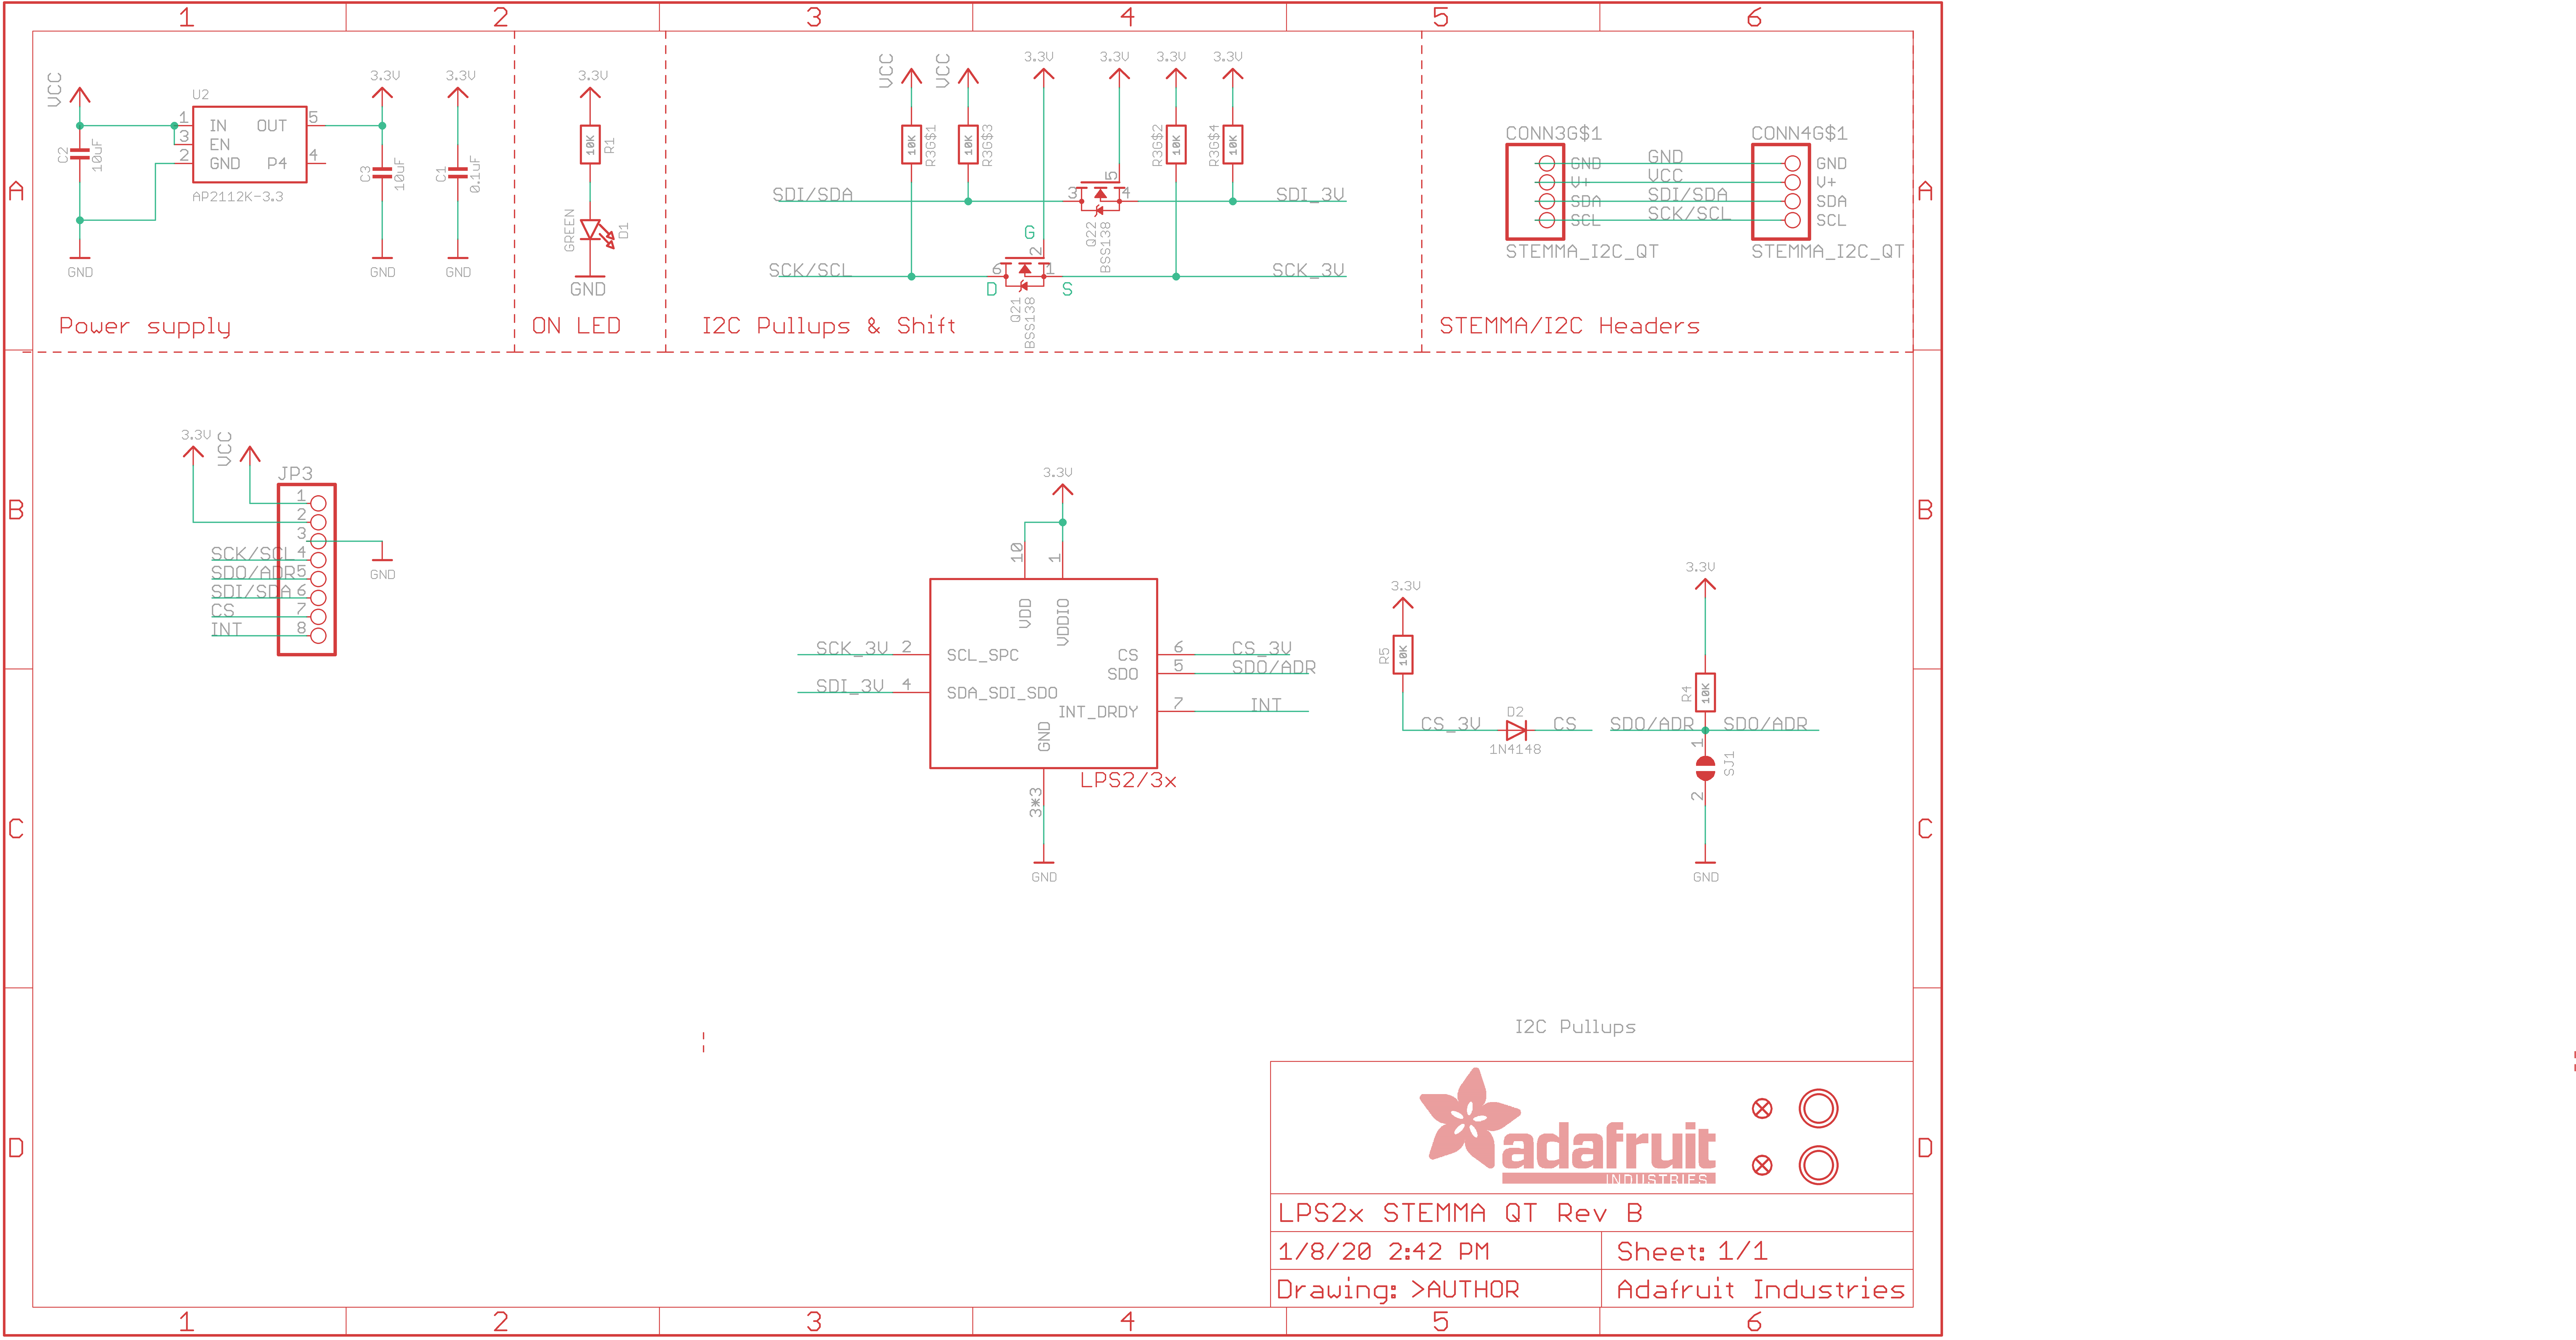 adafruit_products_f_downloads_schematic.png